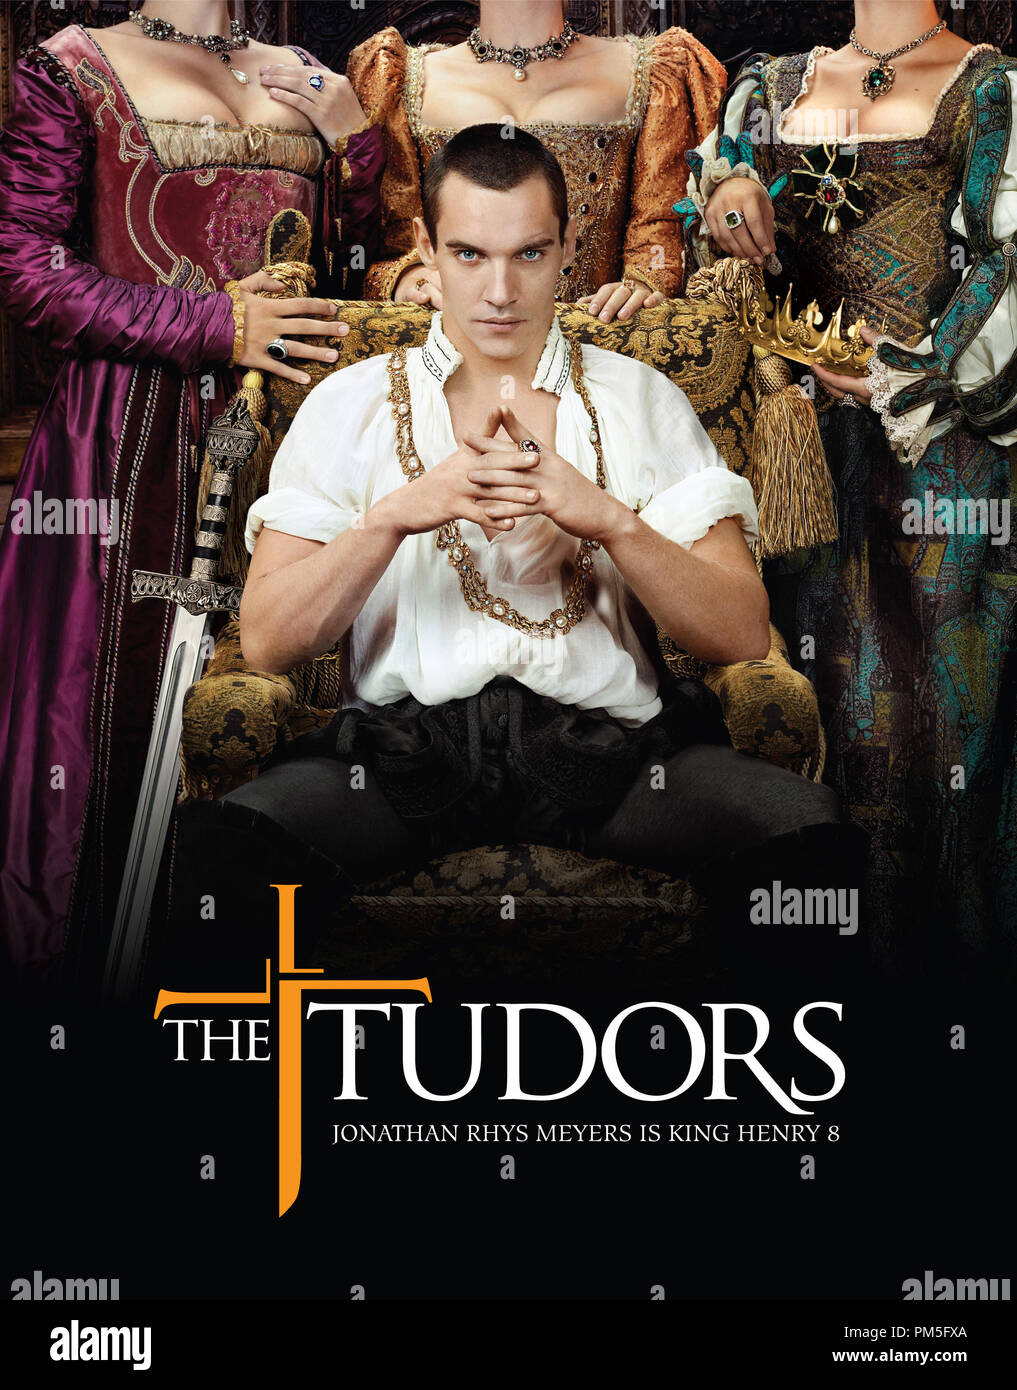 Studio Publicity Still from 'The Tudors' Artwork 2007   File Reference # 307381761THA  For Editorial Use Only -  All Rights Reserved - Stock Image